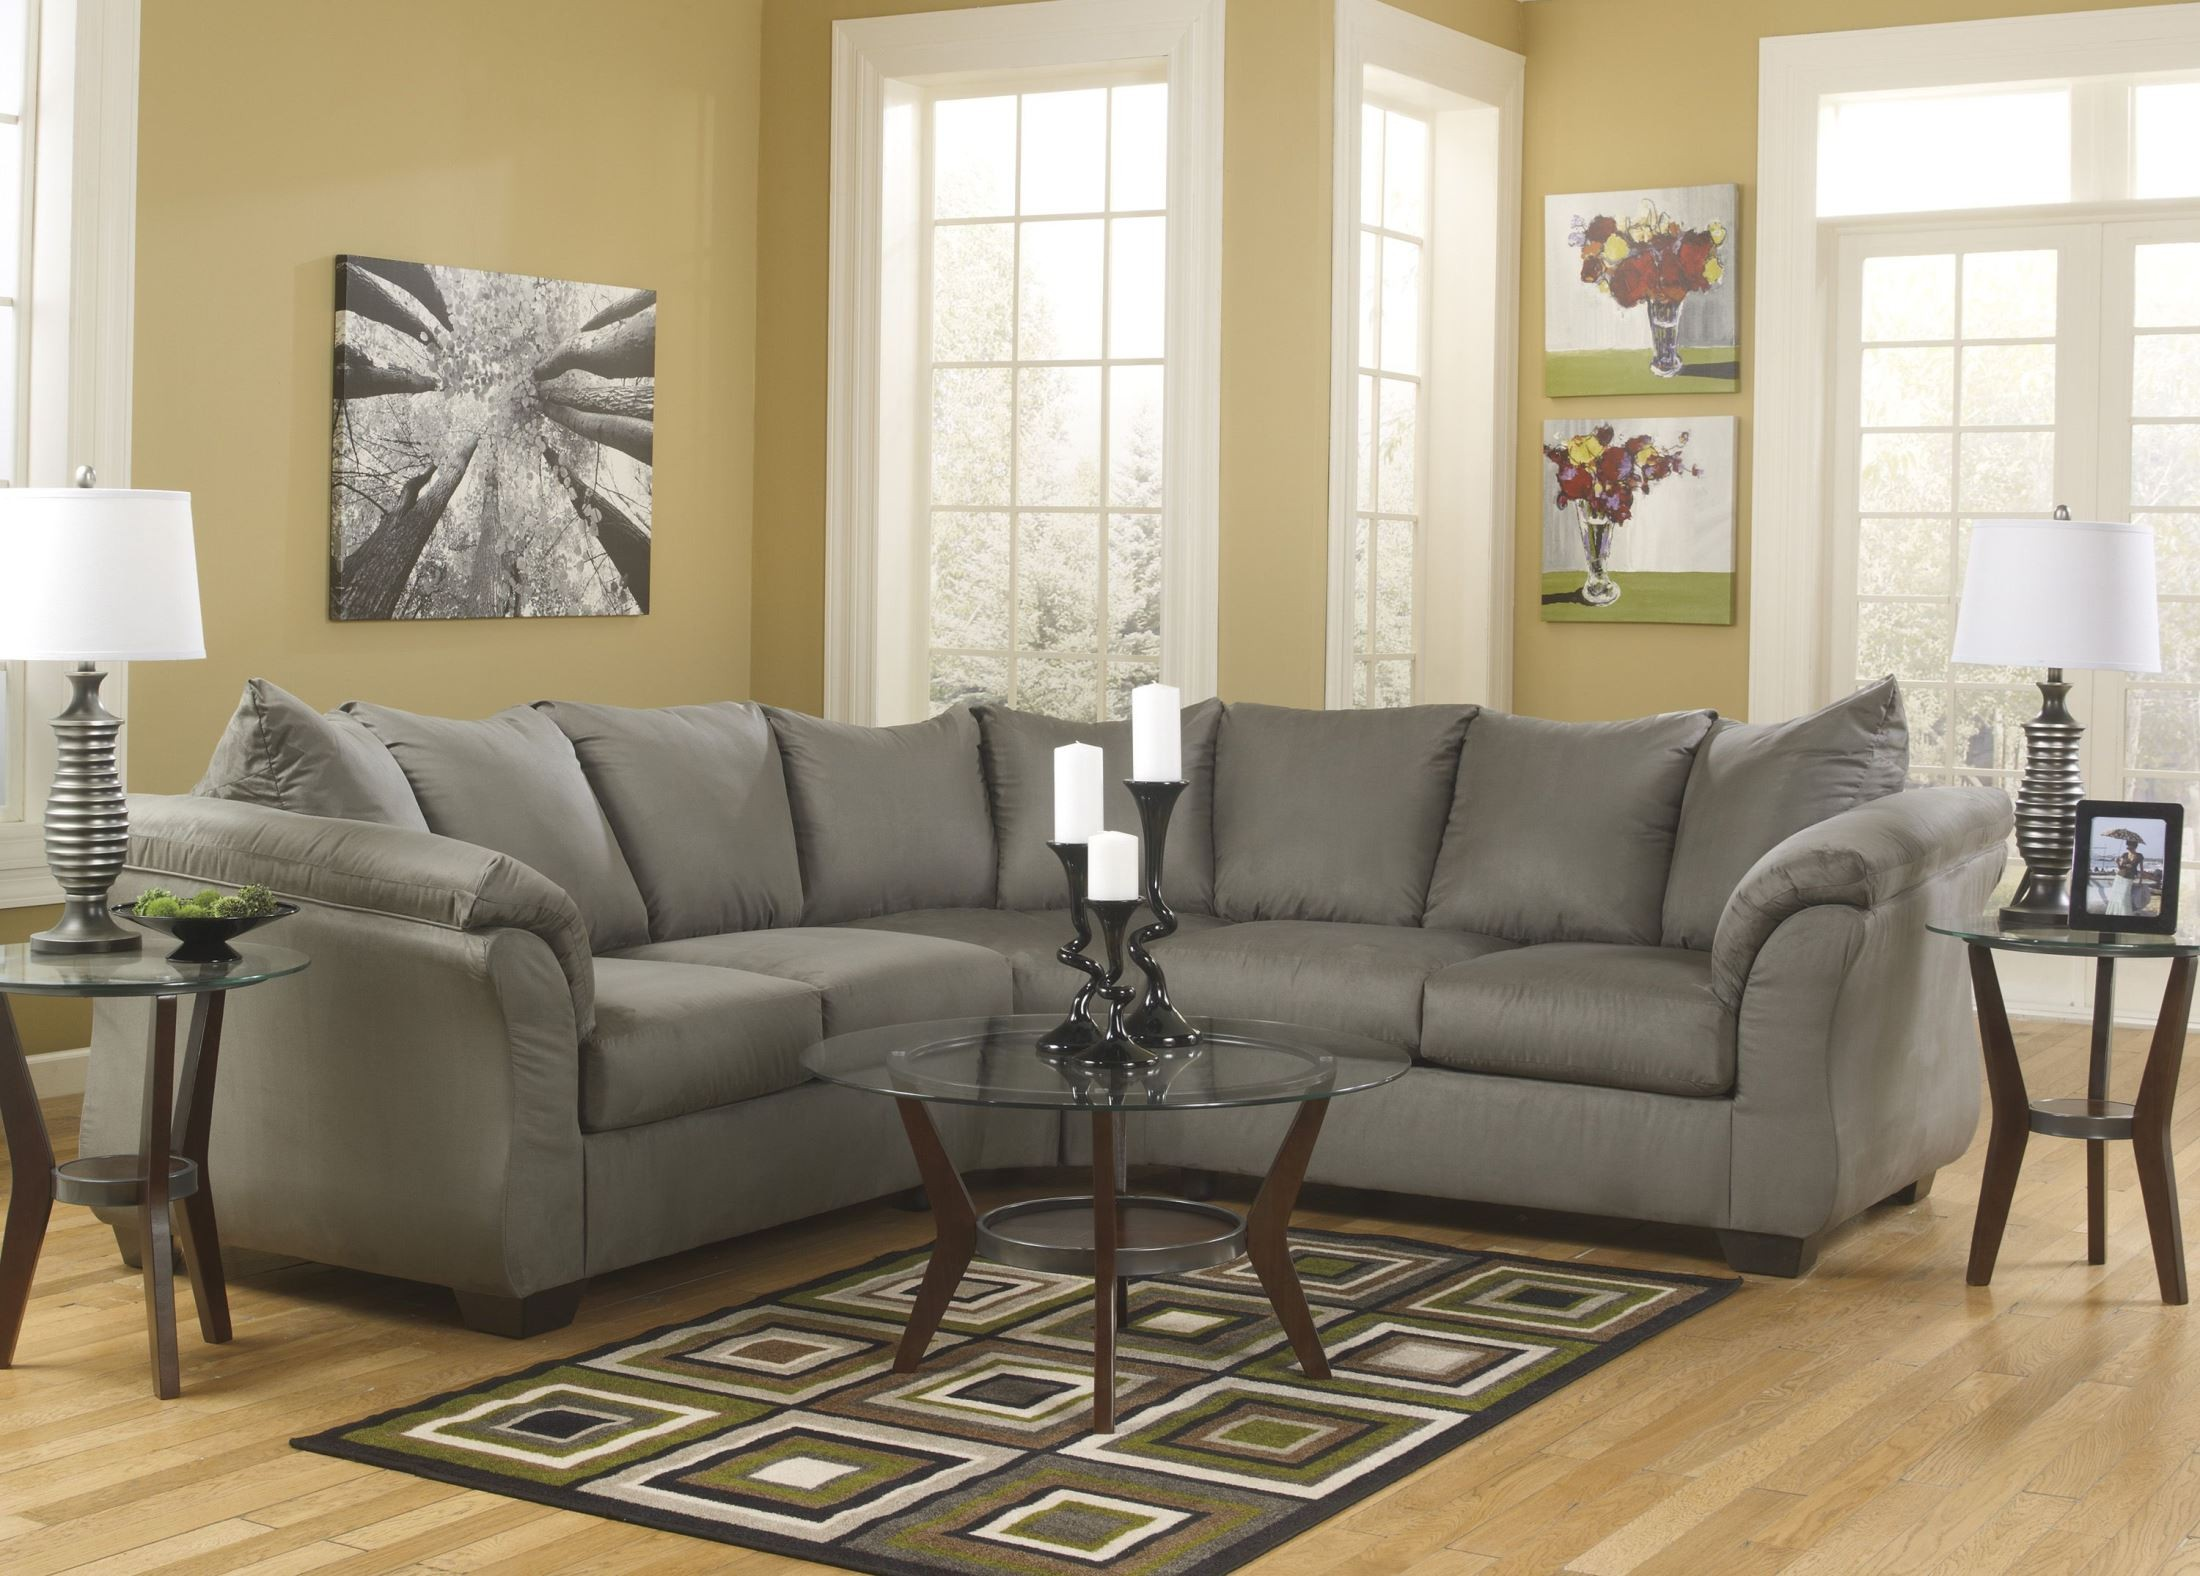 Darcy Cobblestone Sectional From Ashley 75005 55 56 Coleman Furniture